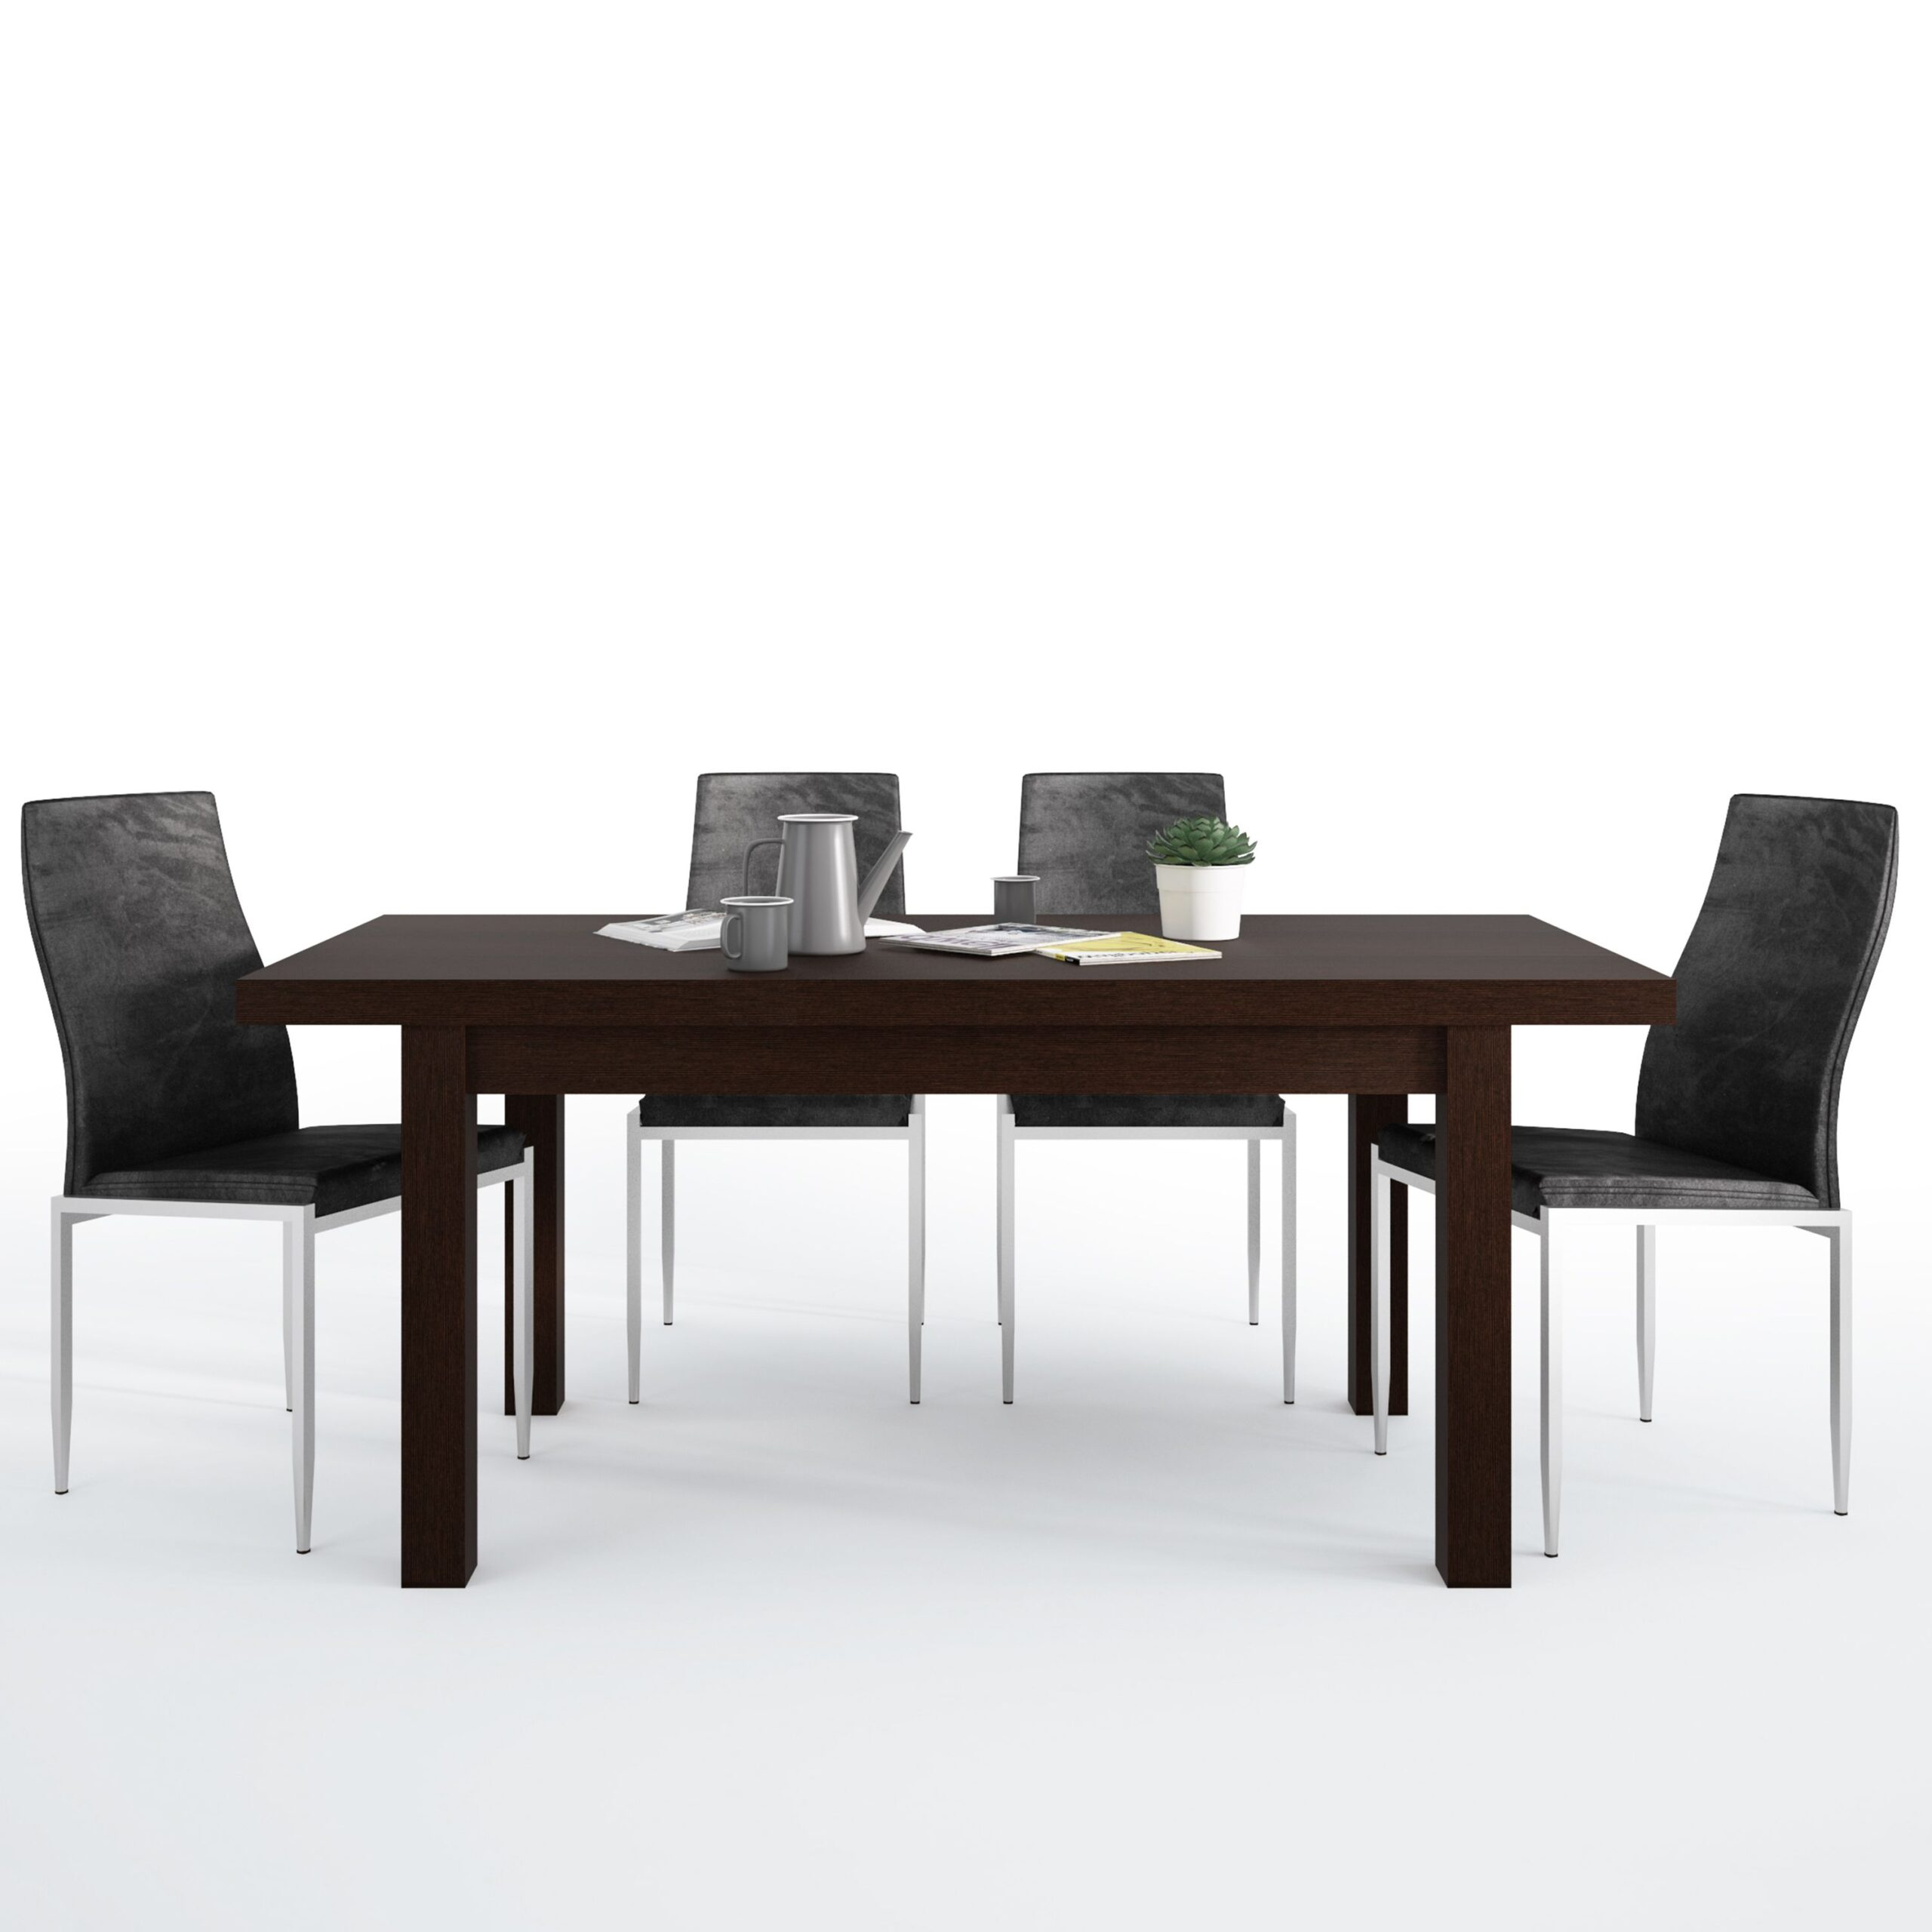 Jello Dining set package Jello Extending Dining Table in Dark Mahogany + 6 Lillie High Back Chair Black